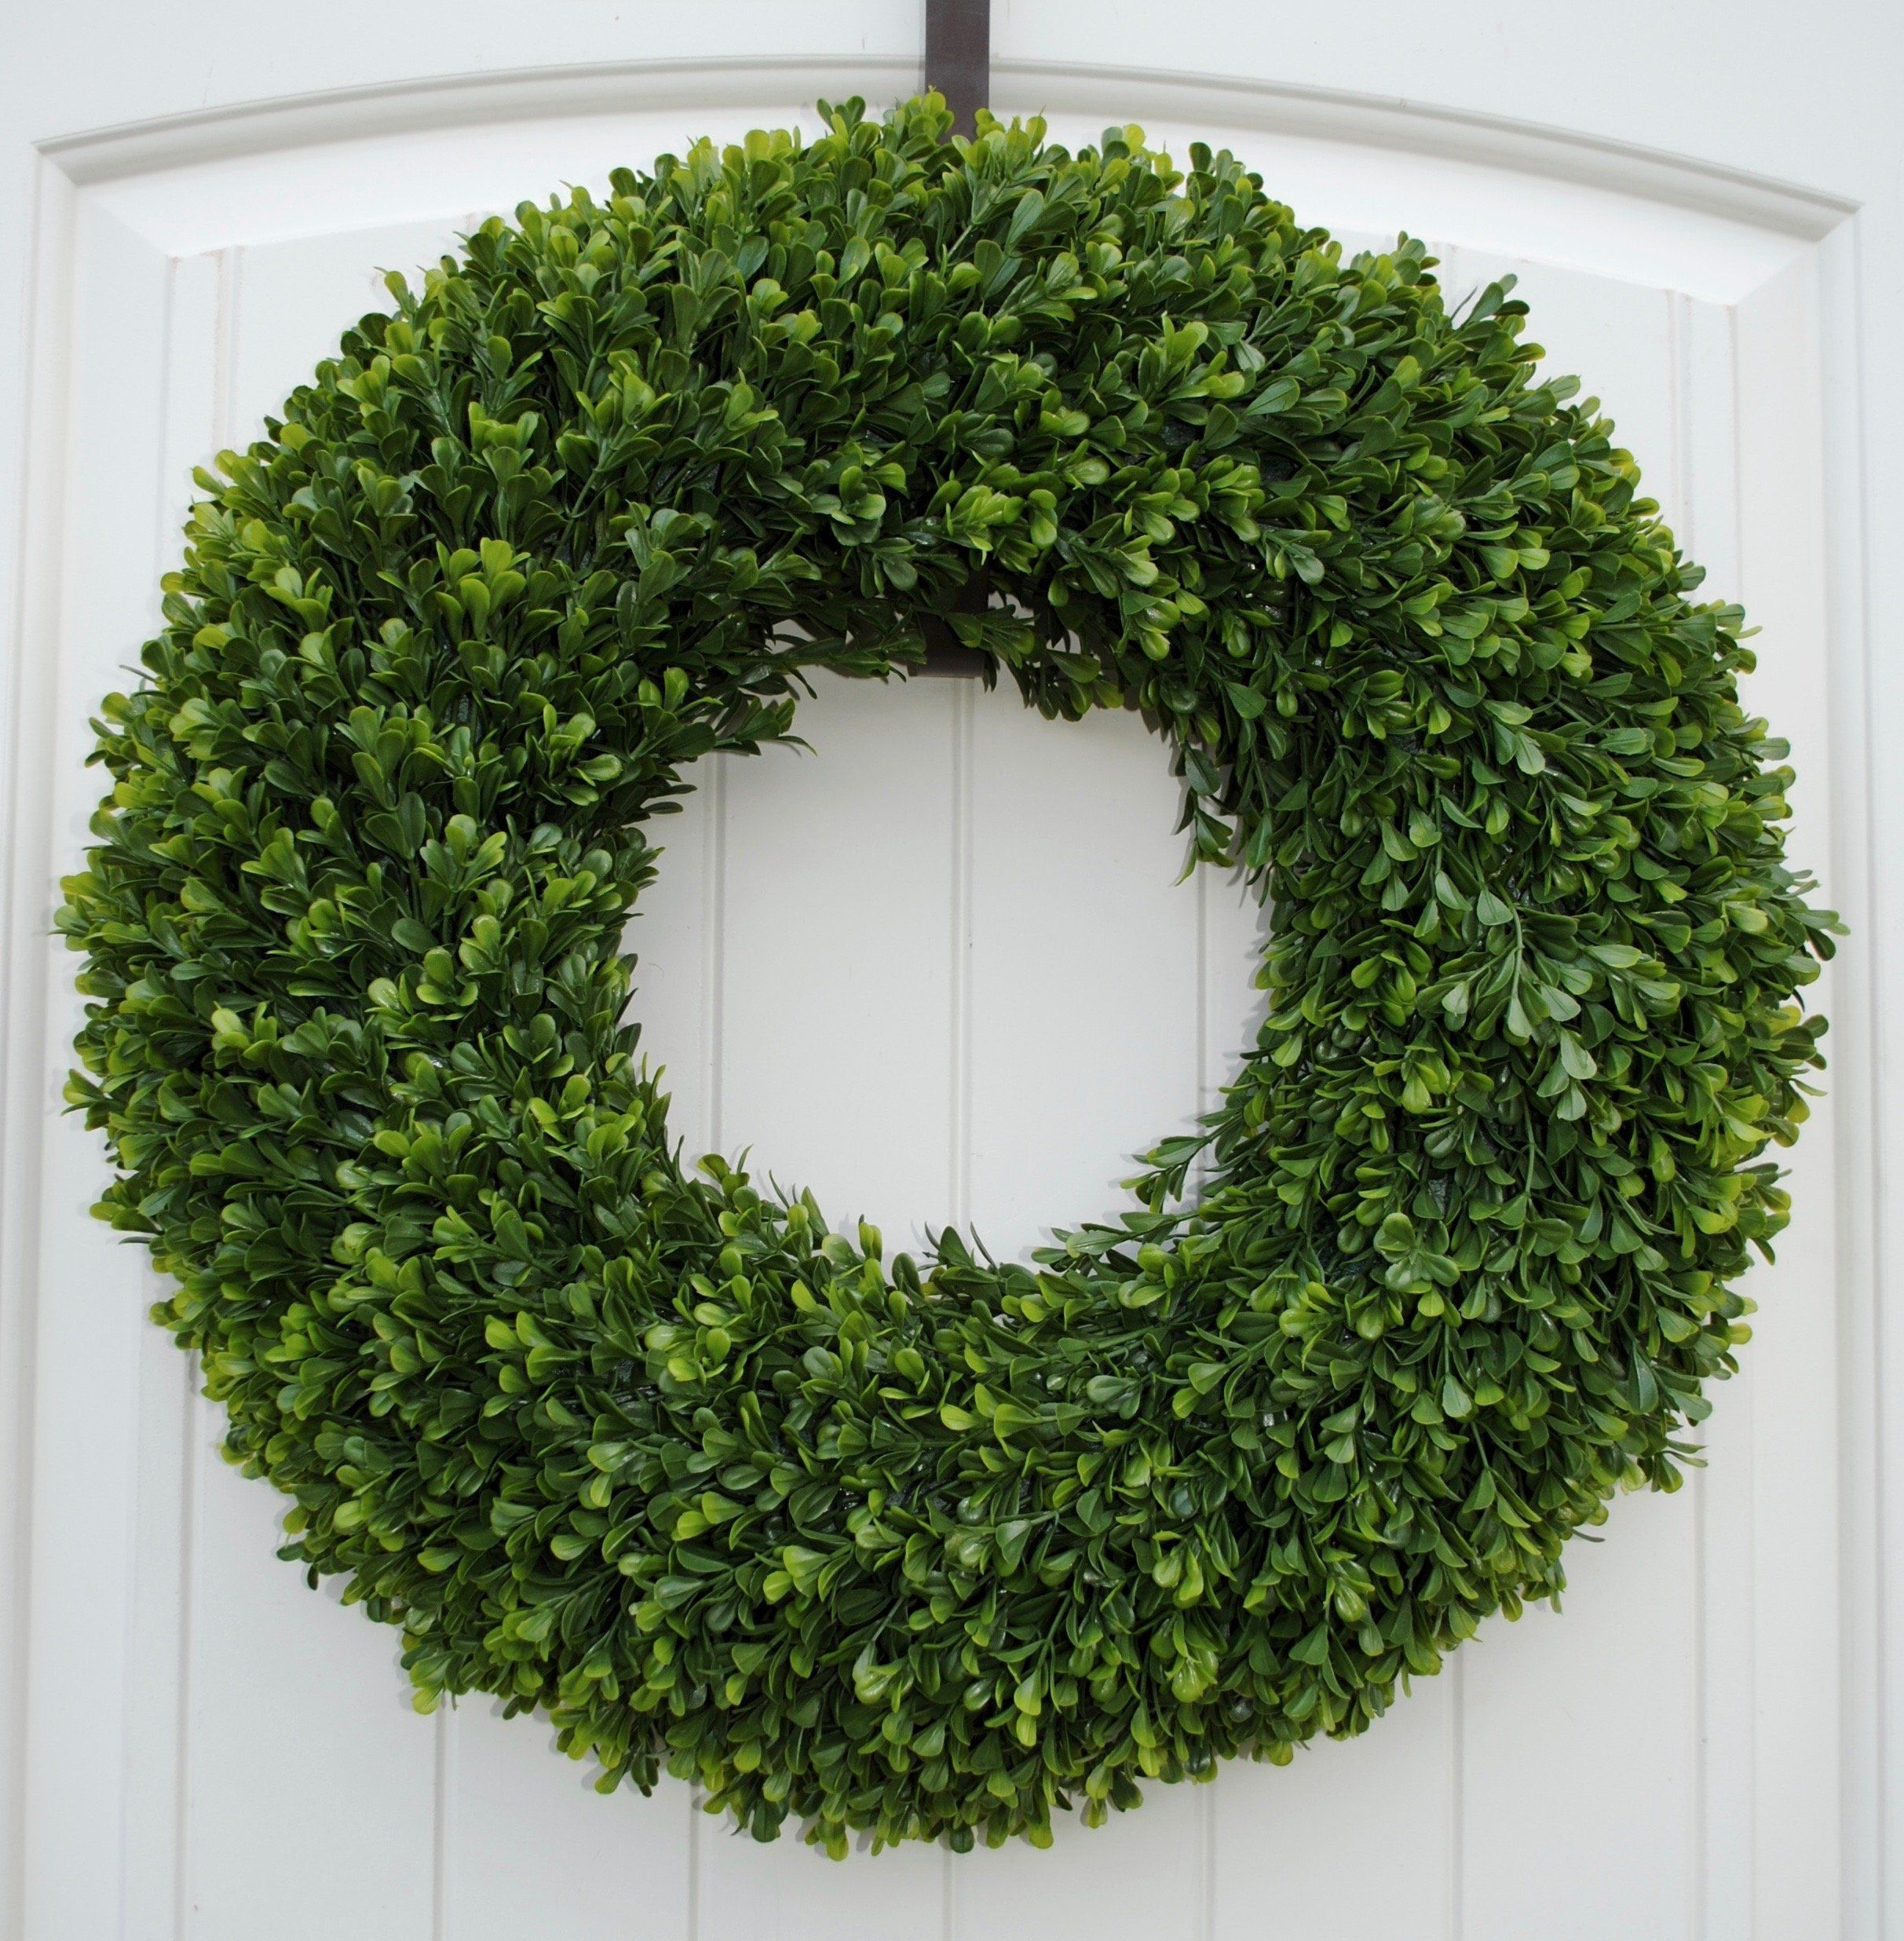 Window frame decor with wreath  green faux boxwood wreath for home decor available in two sizes